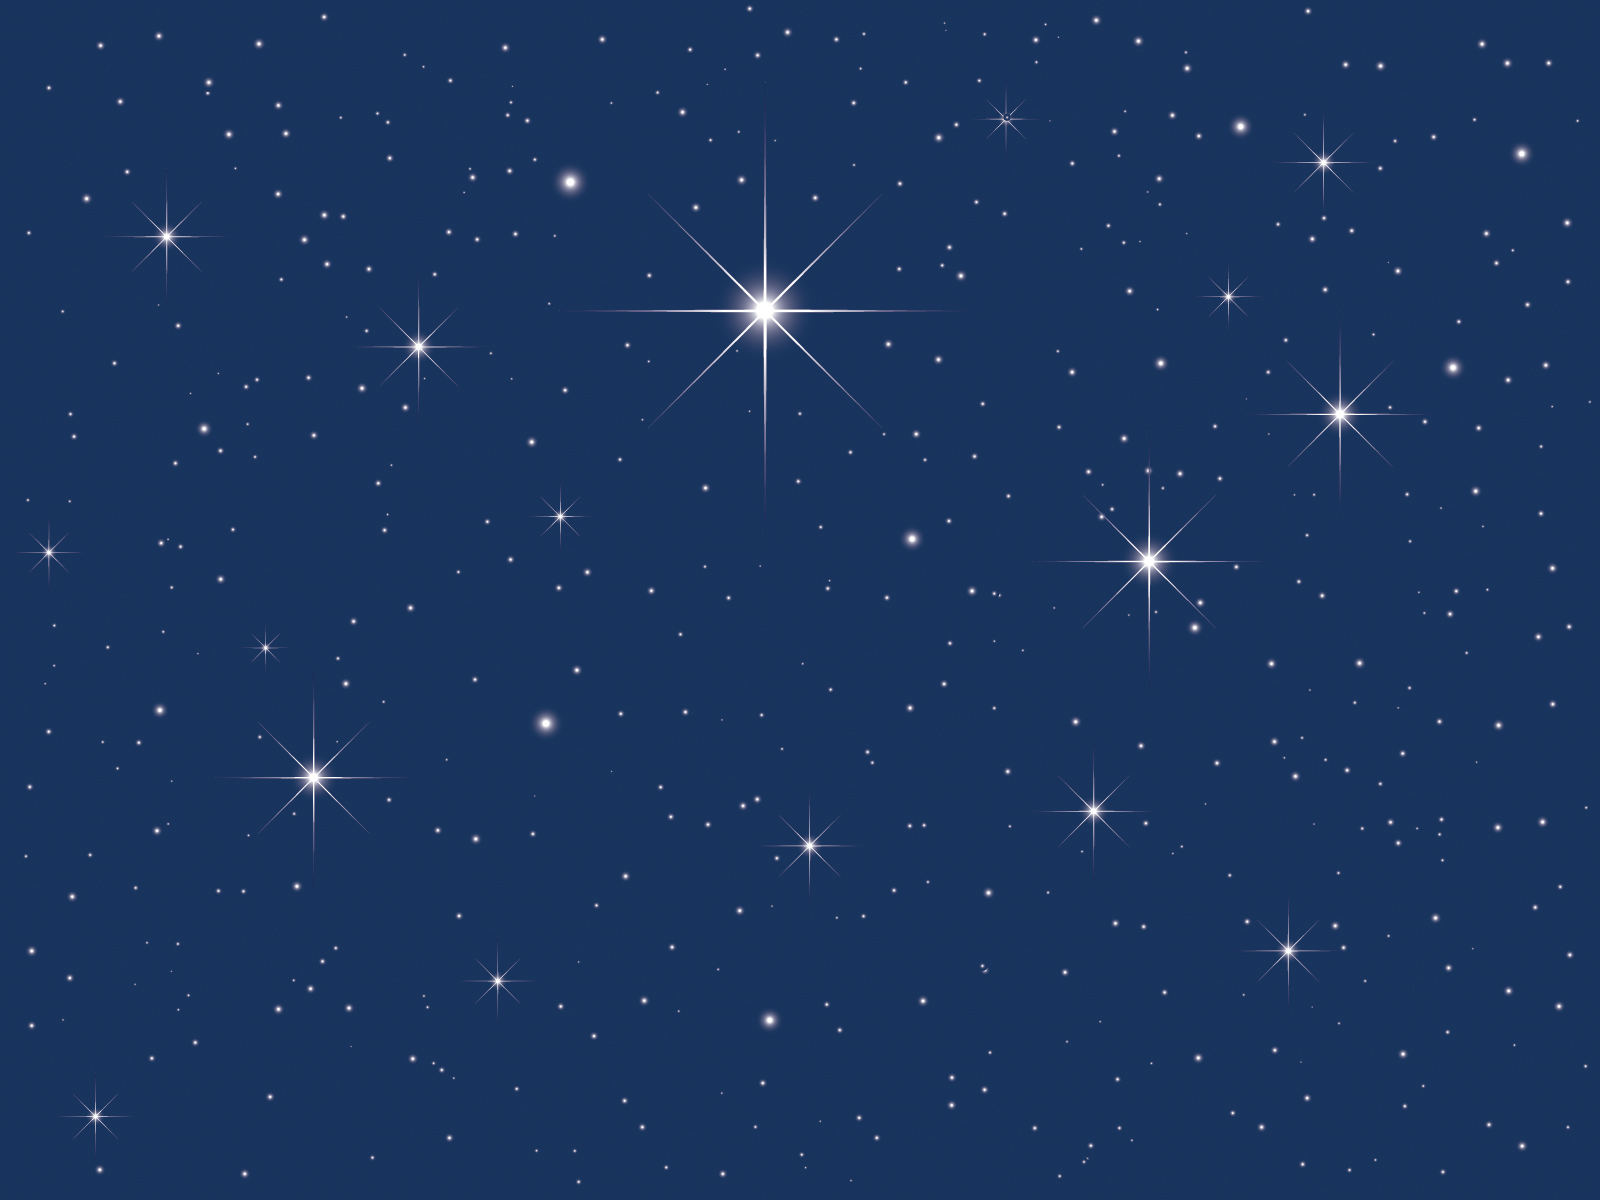 Background clipart starry night Free Images sky%20clipart Sky Clipart